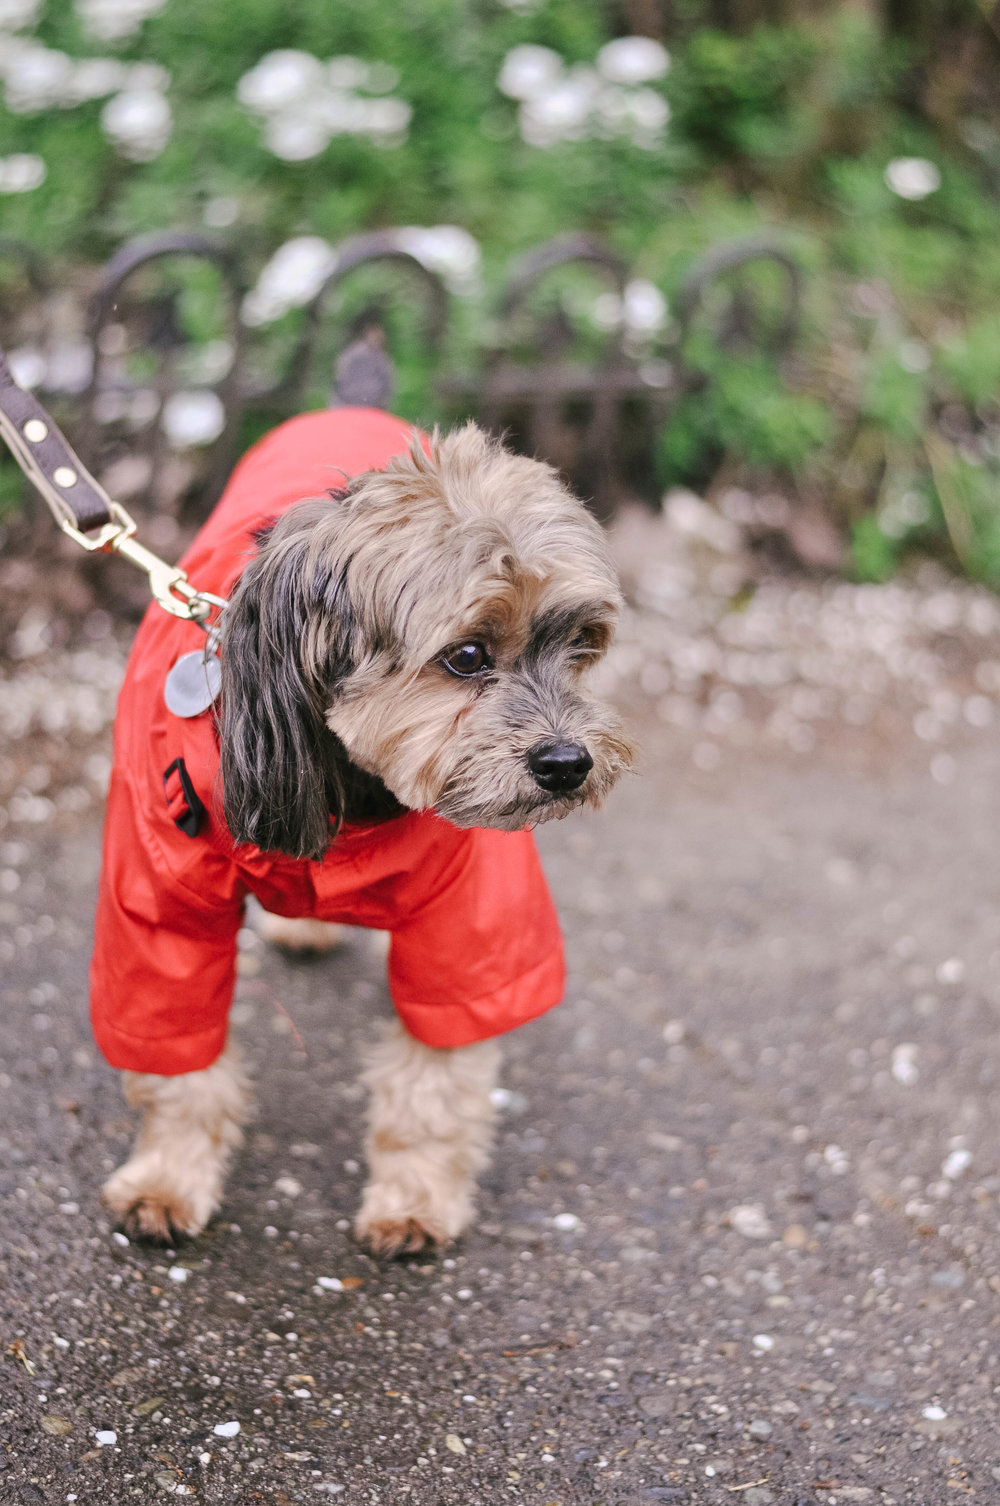 Little dog in red raincoat